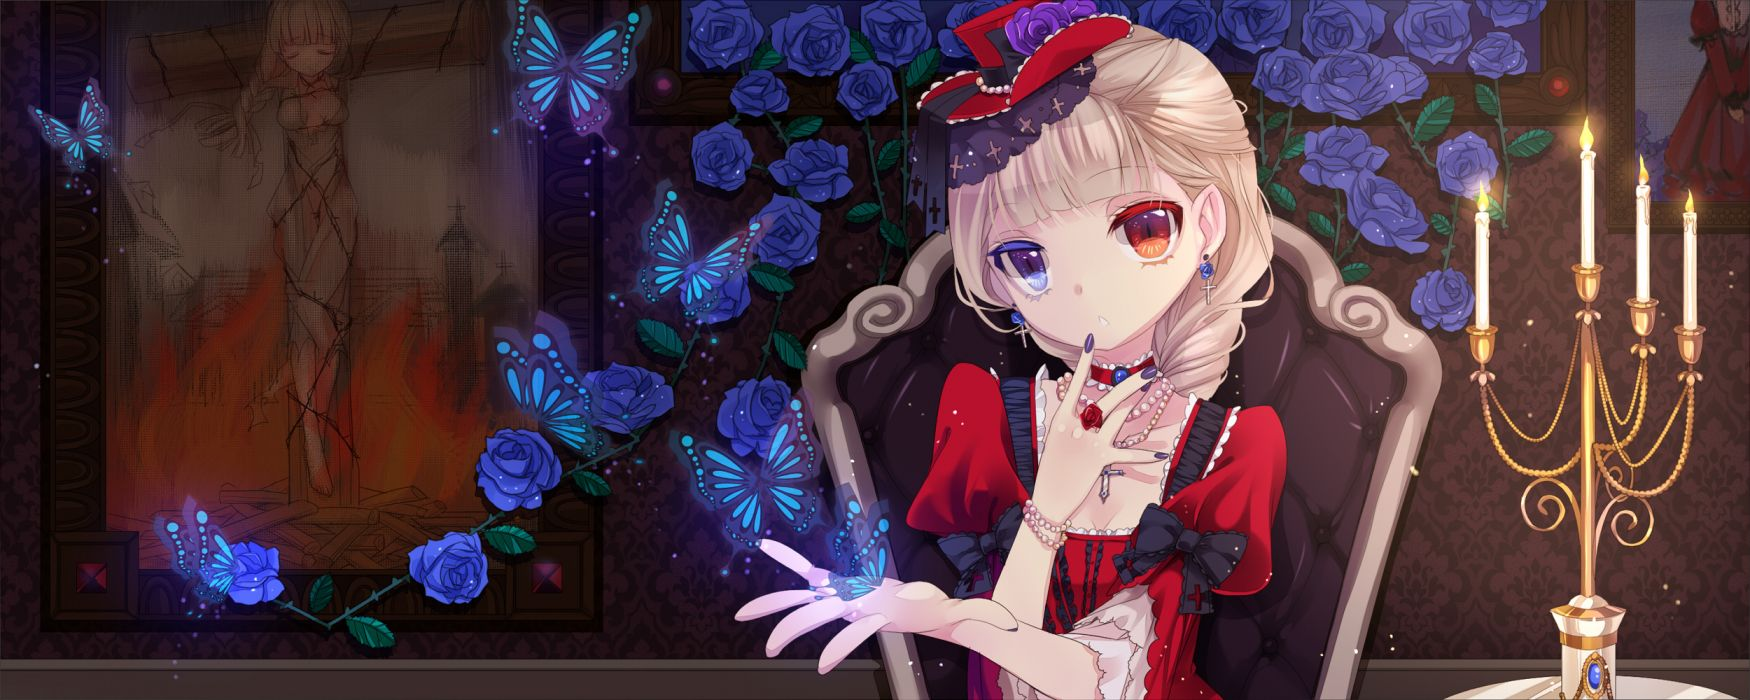 bicolored eyes blonde hair bow butterfly dress fire flowers hat mvv necklace original rose wallpaper